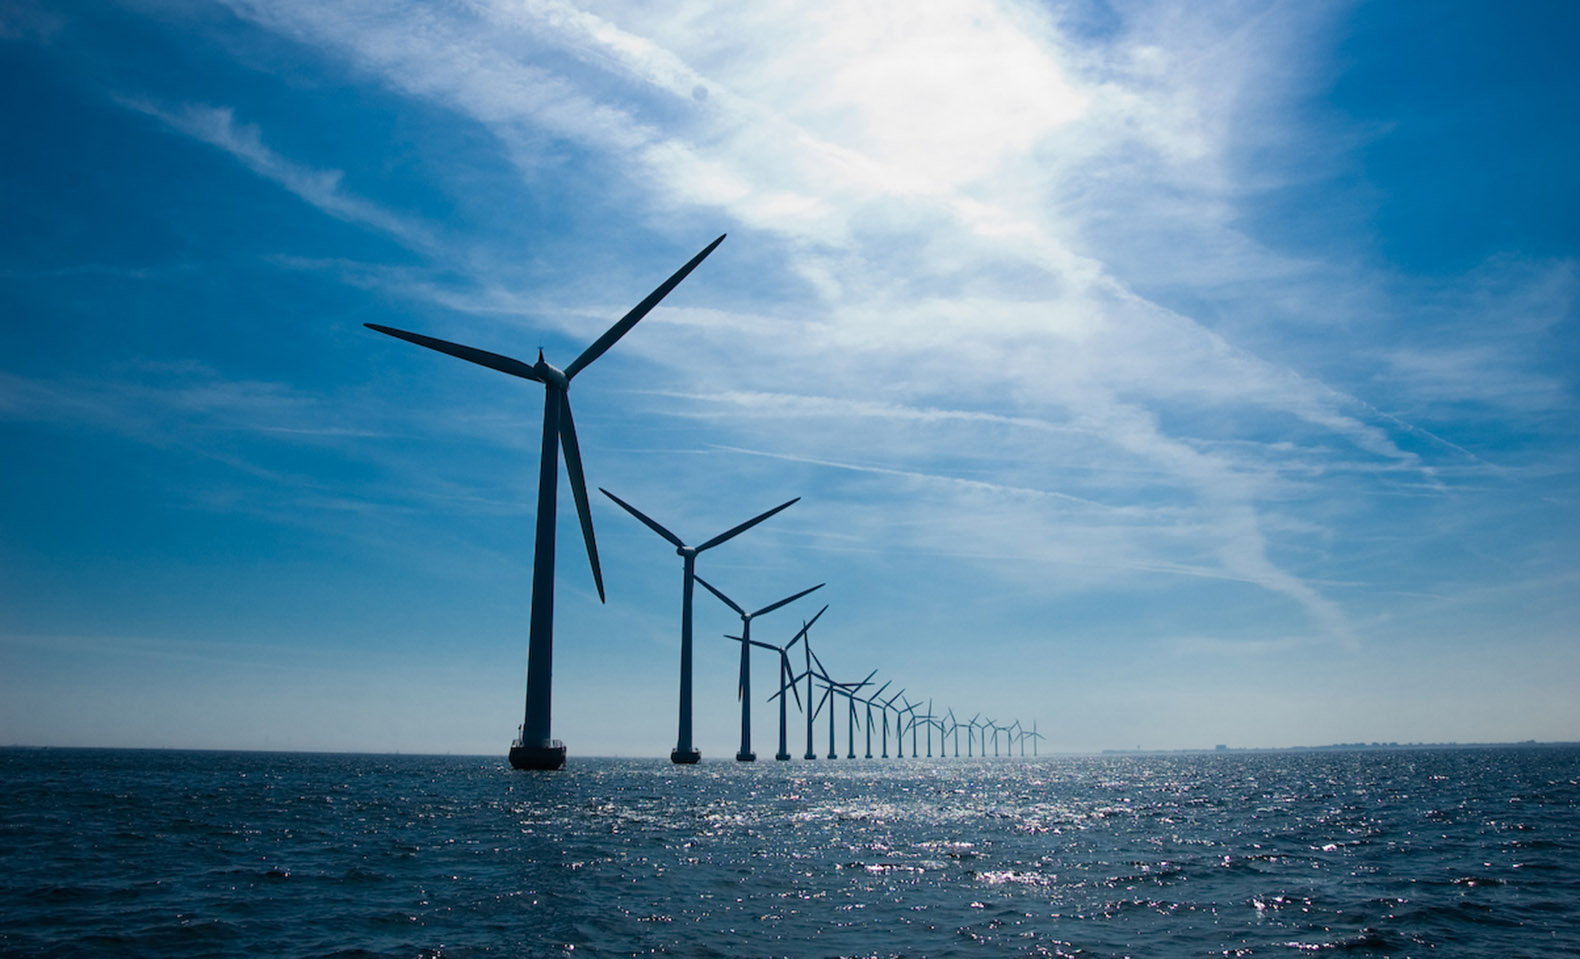 European wind energy is now cheaper than nuclear power